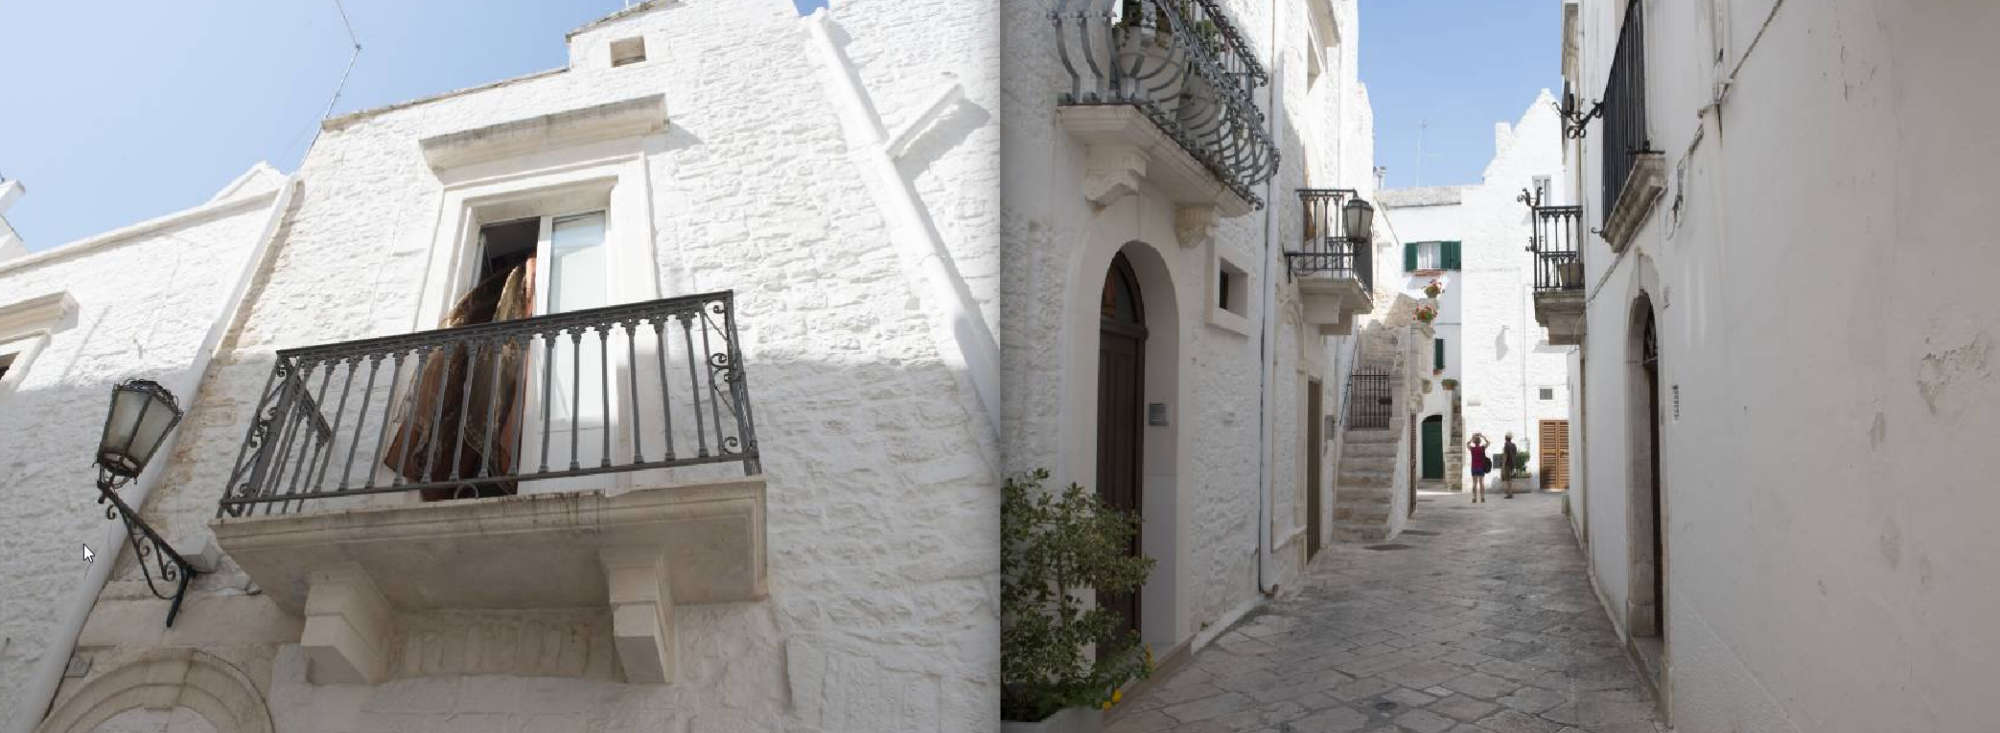 Puglia Album - Page 28: An open door to a balcony – Page 29:  An ally flanked by white walls